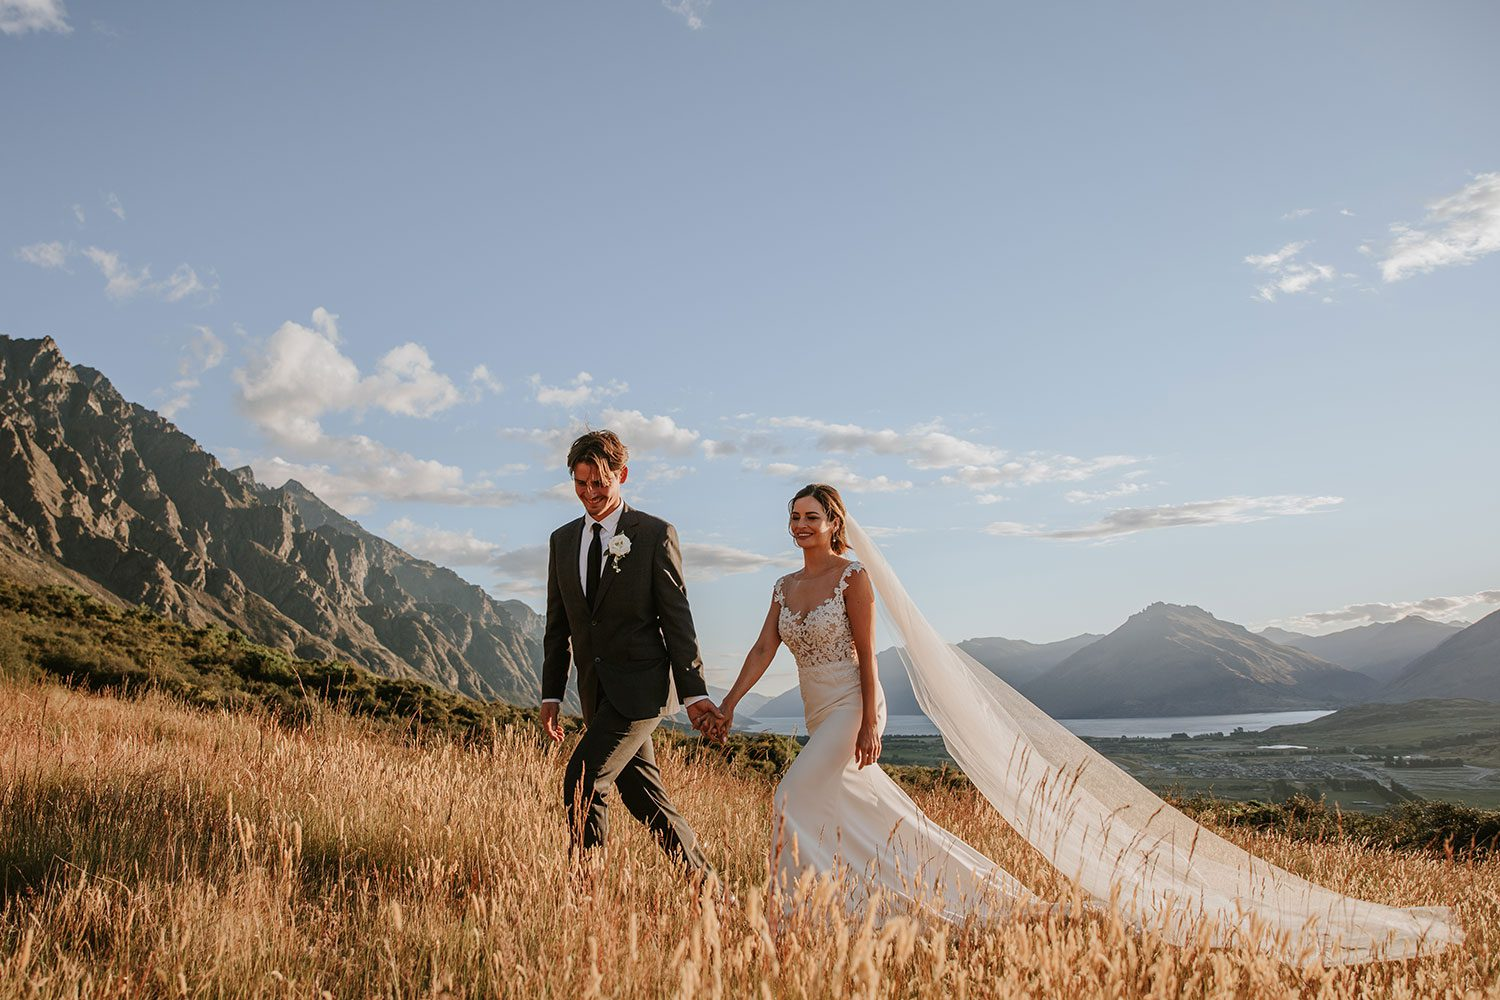 Bride wearing bespoke bridal gown with richly beaded lace over sheer tulle bodice and low back from Auckland wedding dress designer Vinka designs - walking across field with groom